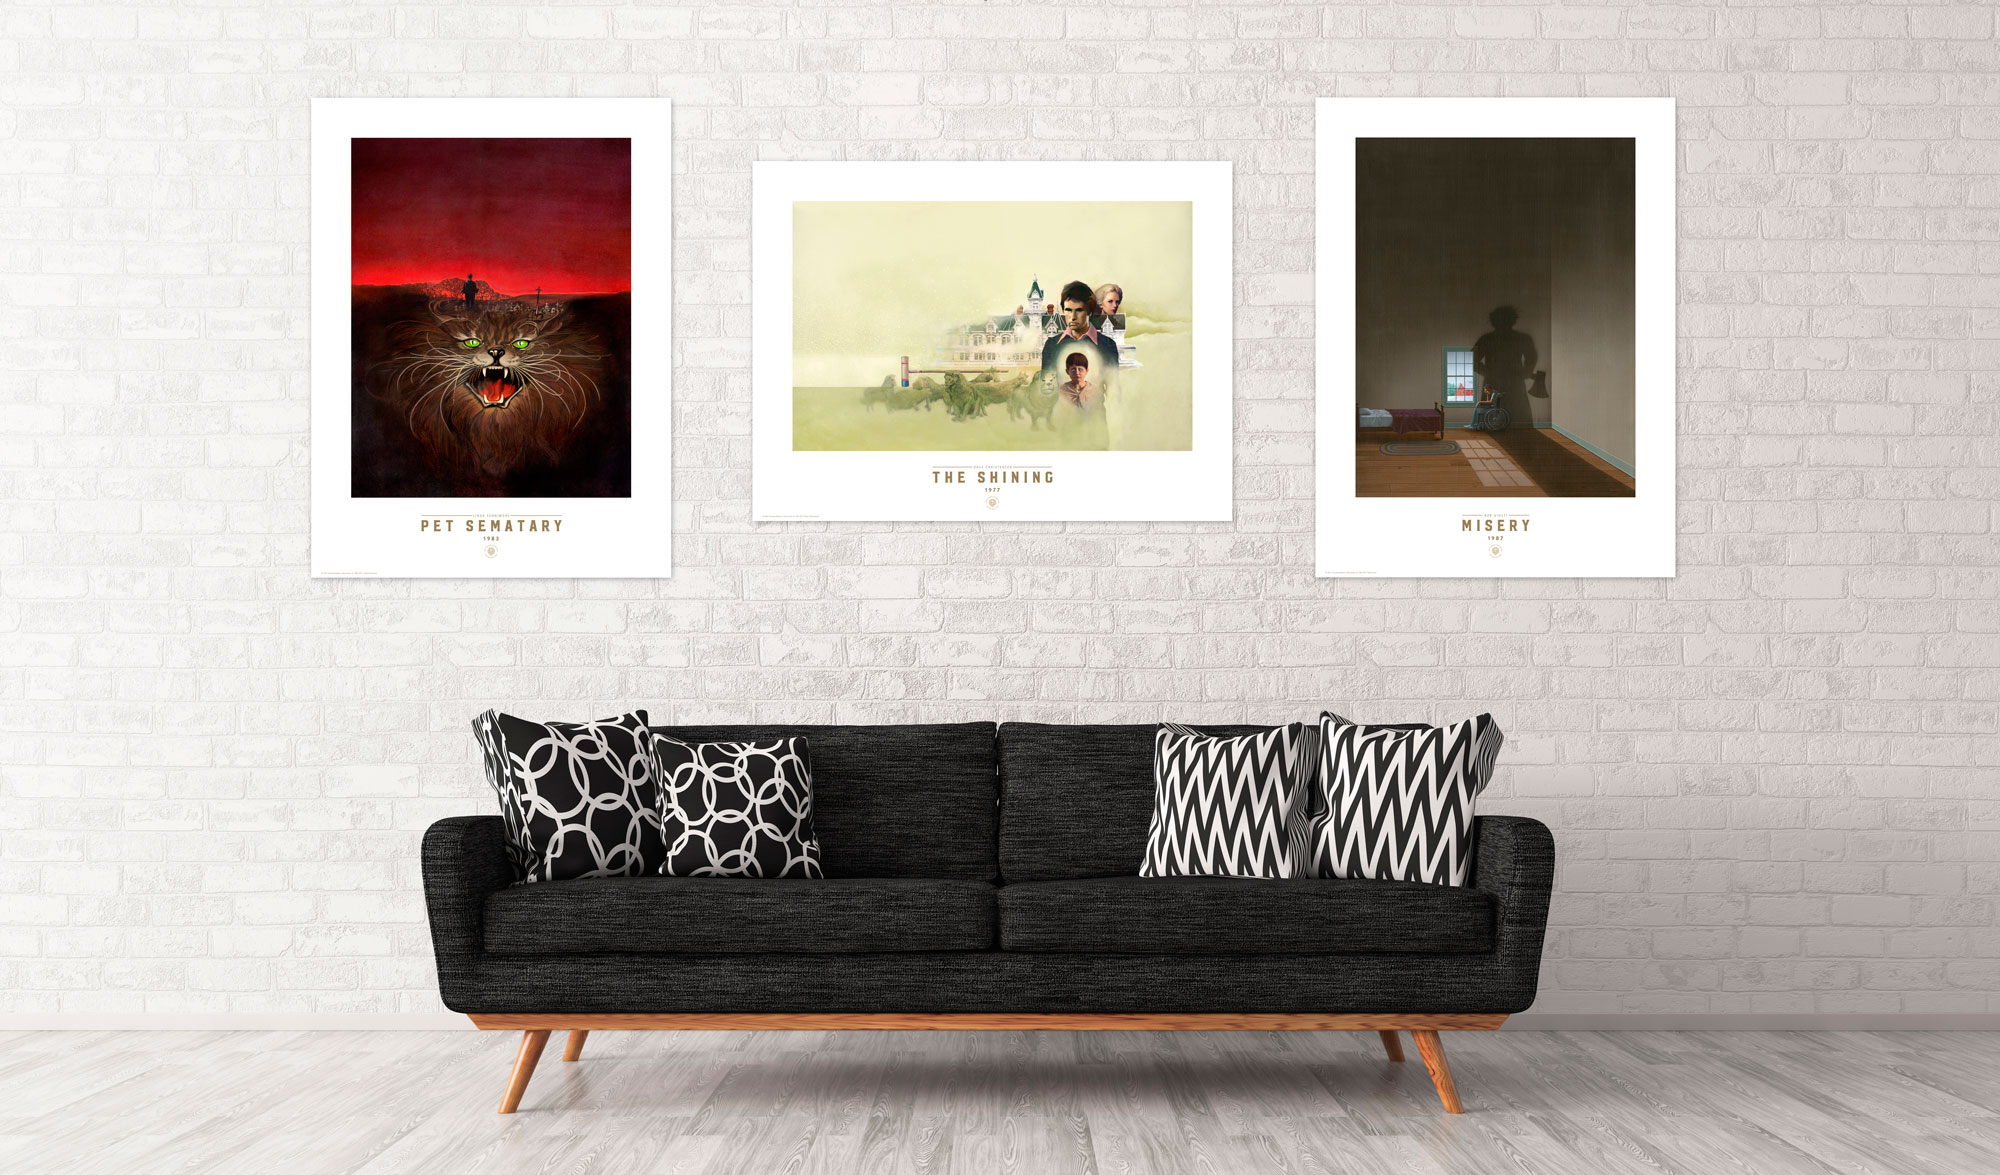 suntup trio sofa - Stephen King's Book Covers Getting Their Own Beautiful Prints